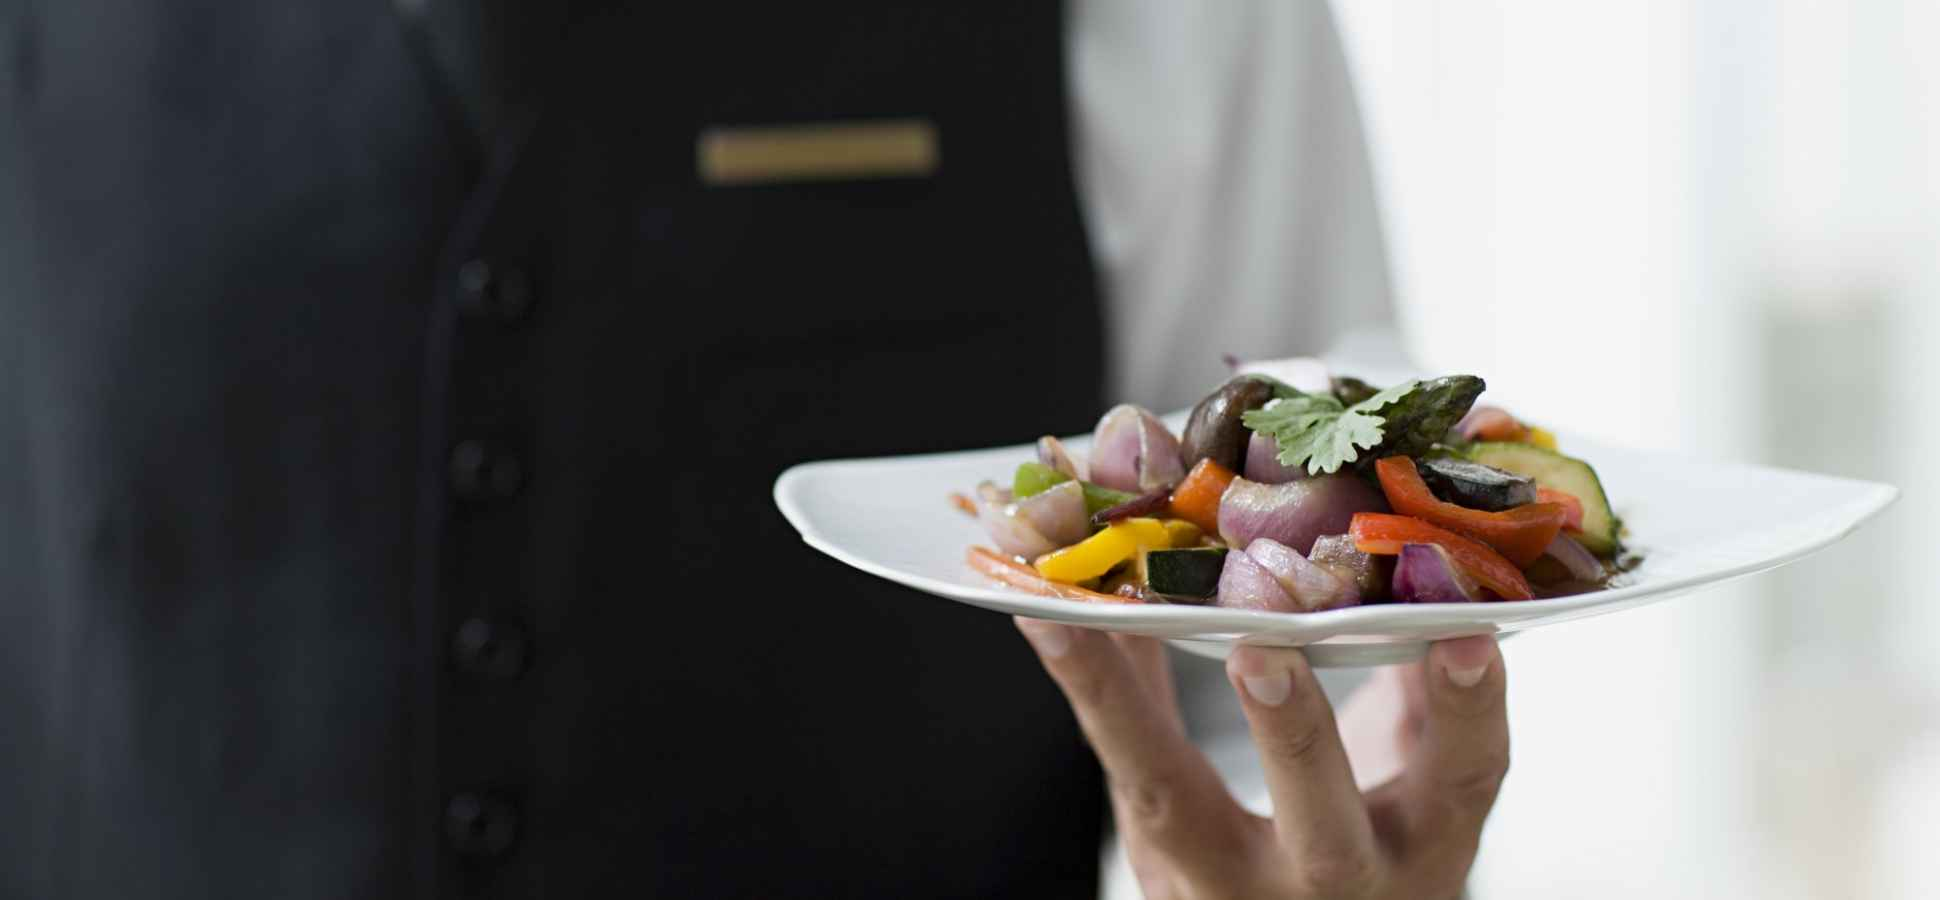 19 Things Restaurant Servers Should Never Say (and What They Could Say Instead)